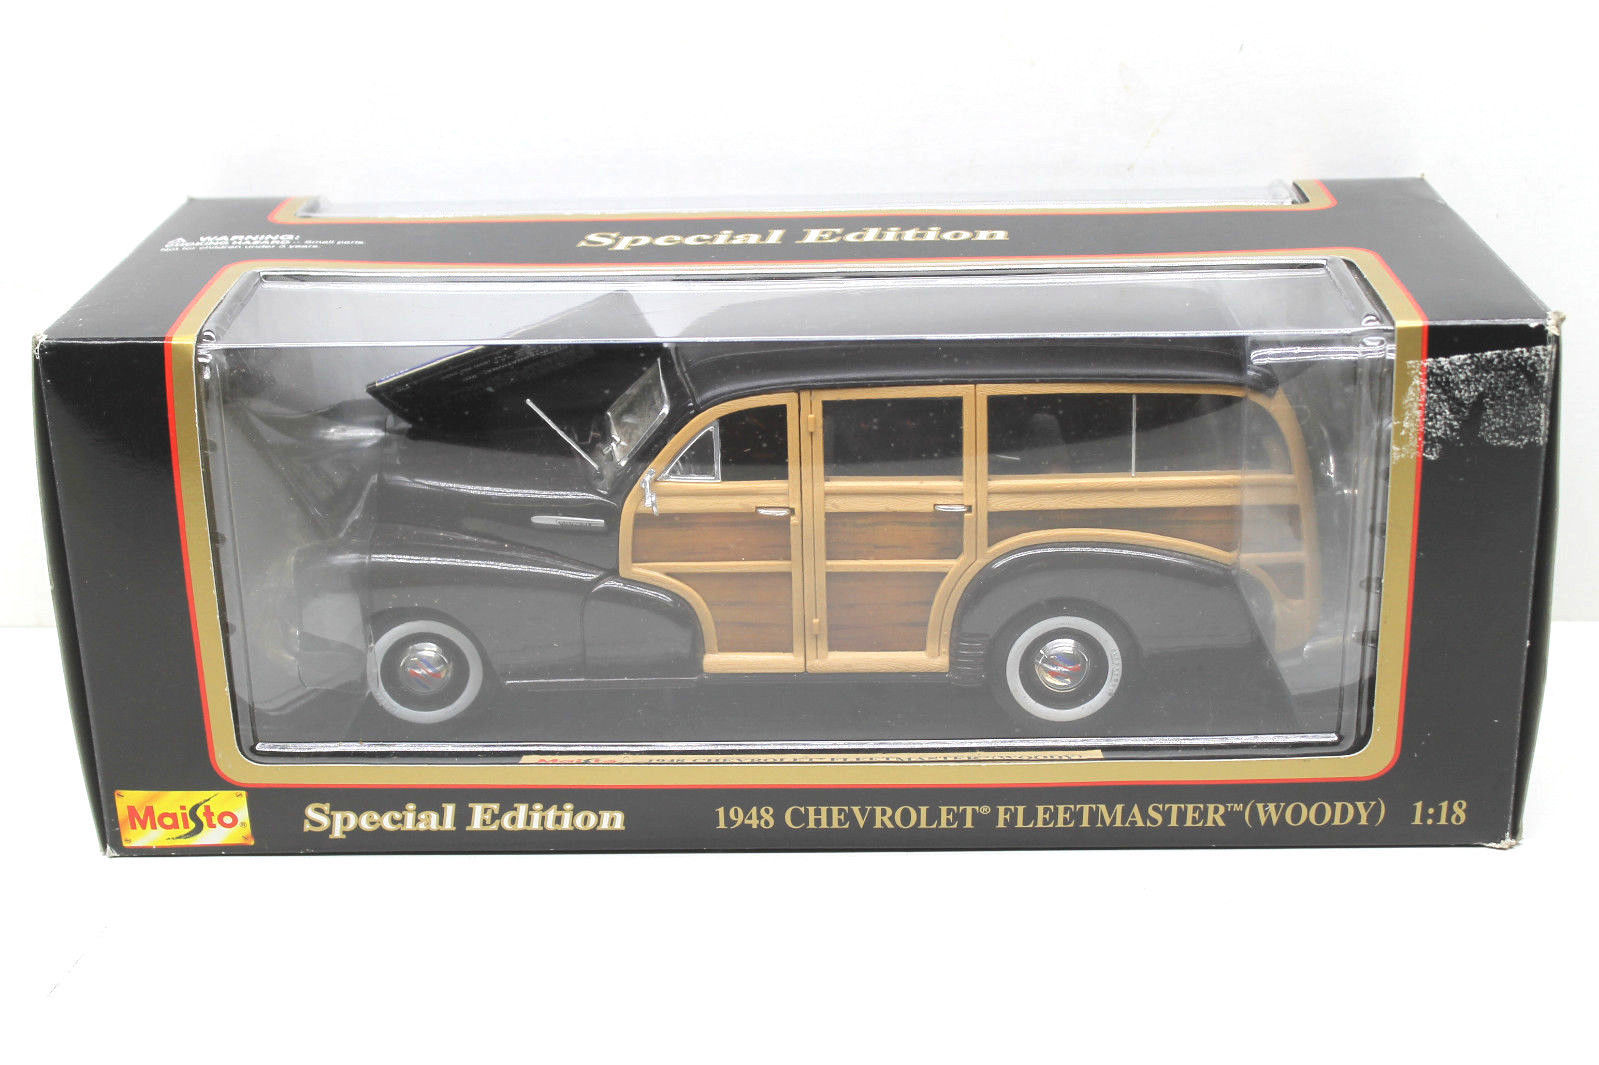 Maisto Die Cast 1 Customer Review And 74 Listings 1948 Ford Truck S 118 Chevrolet Chevy Fleetmaster Woody Metal Se New In Box 4206